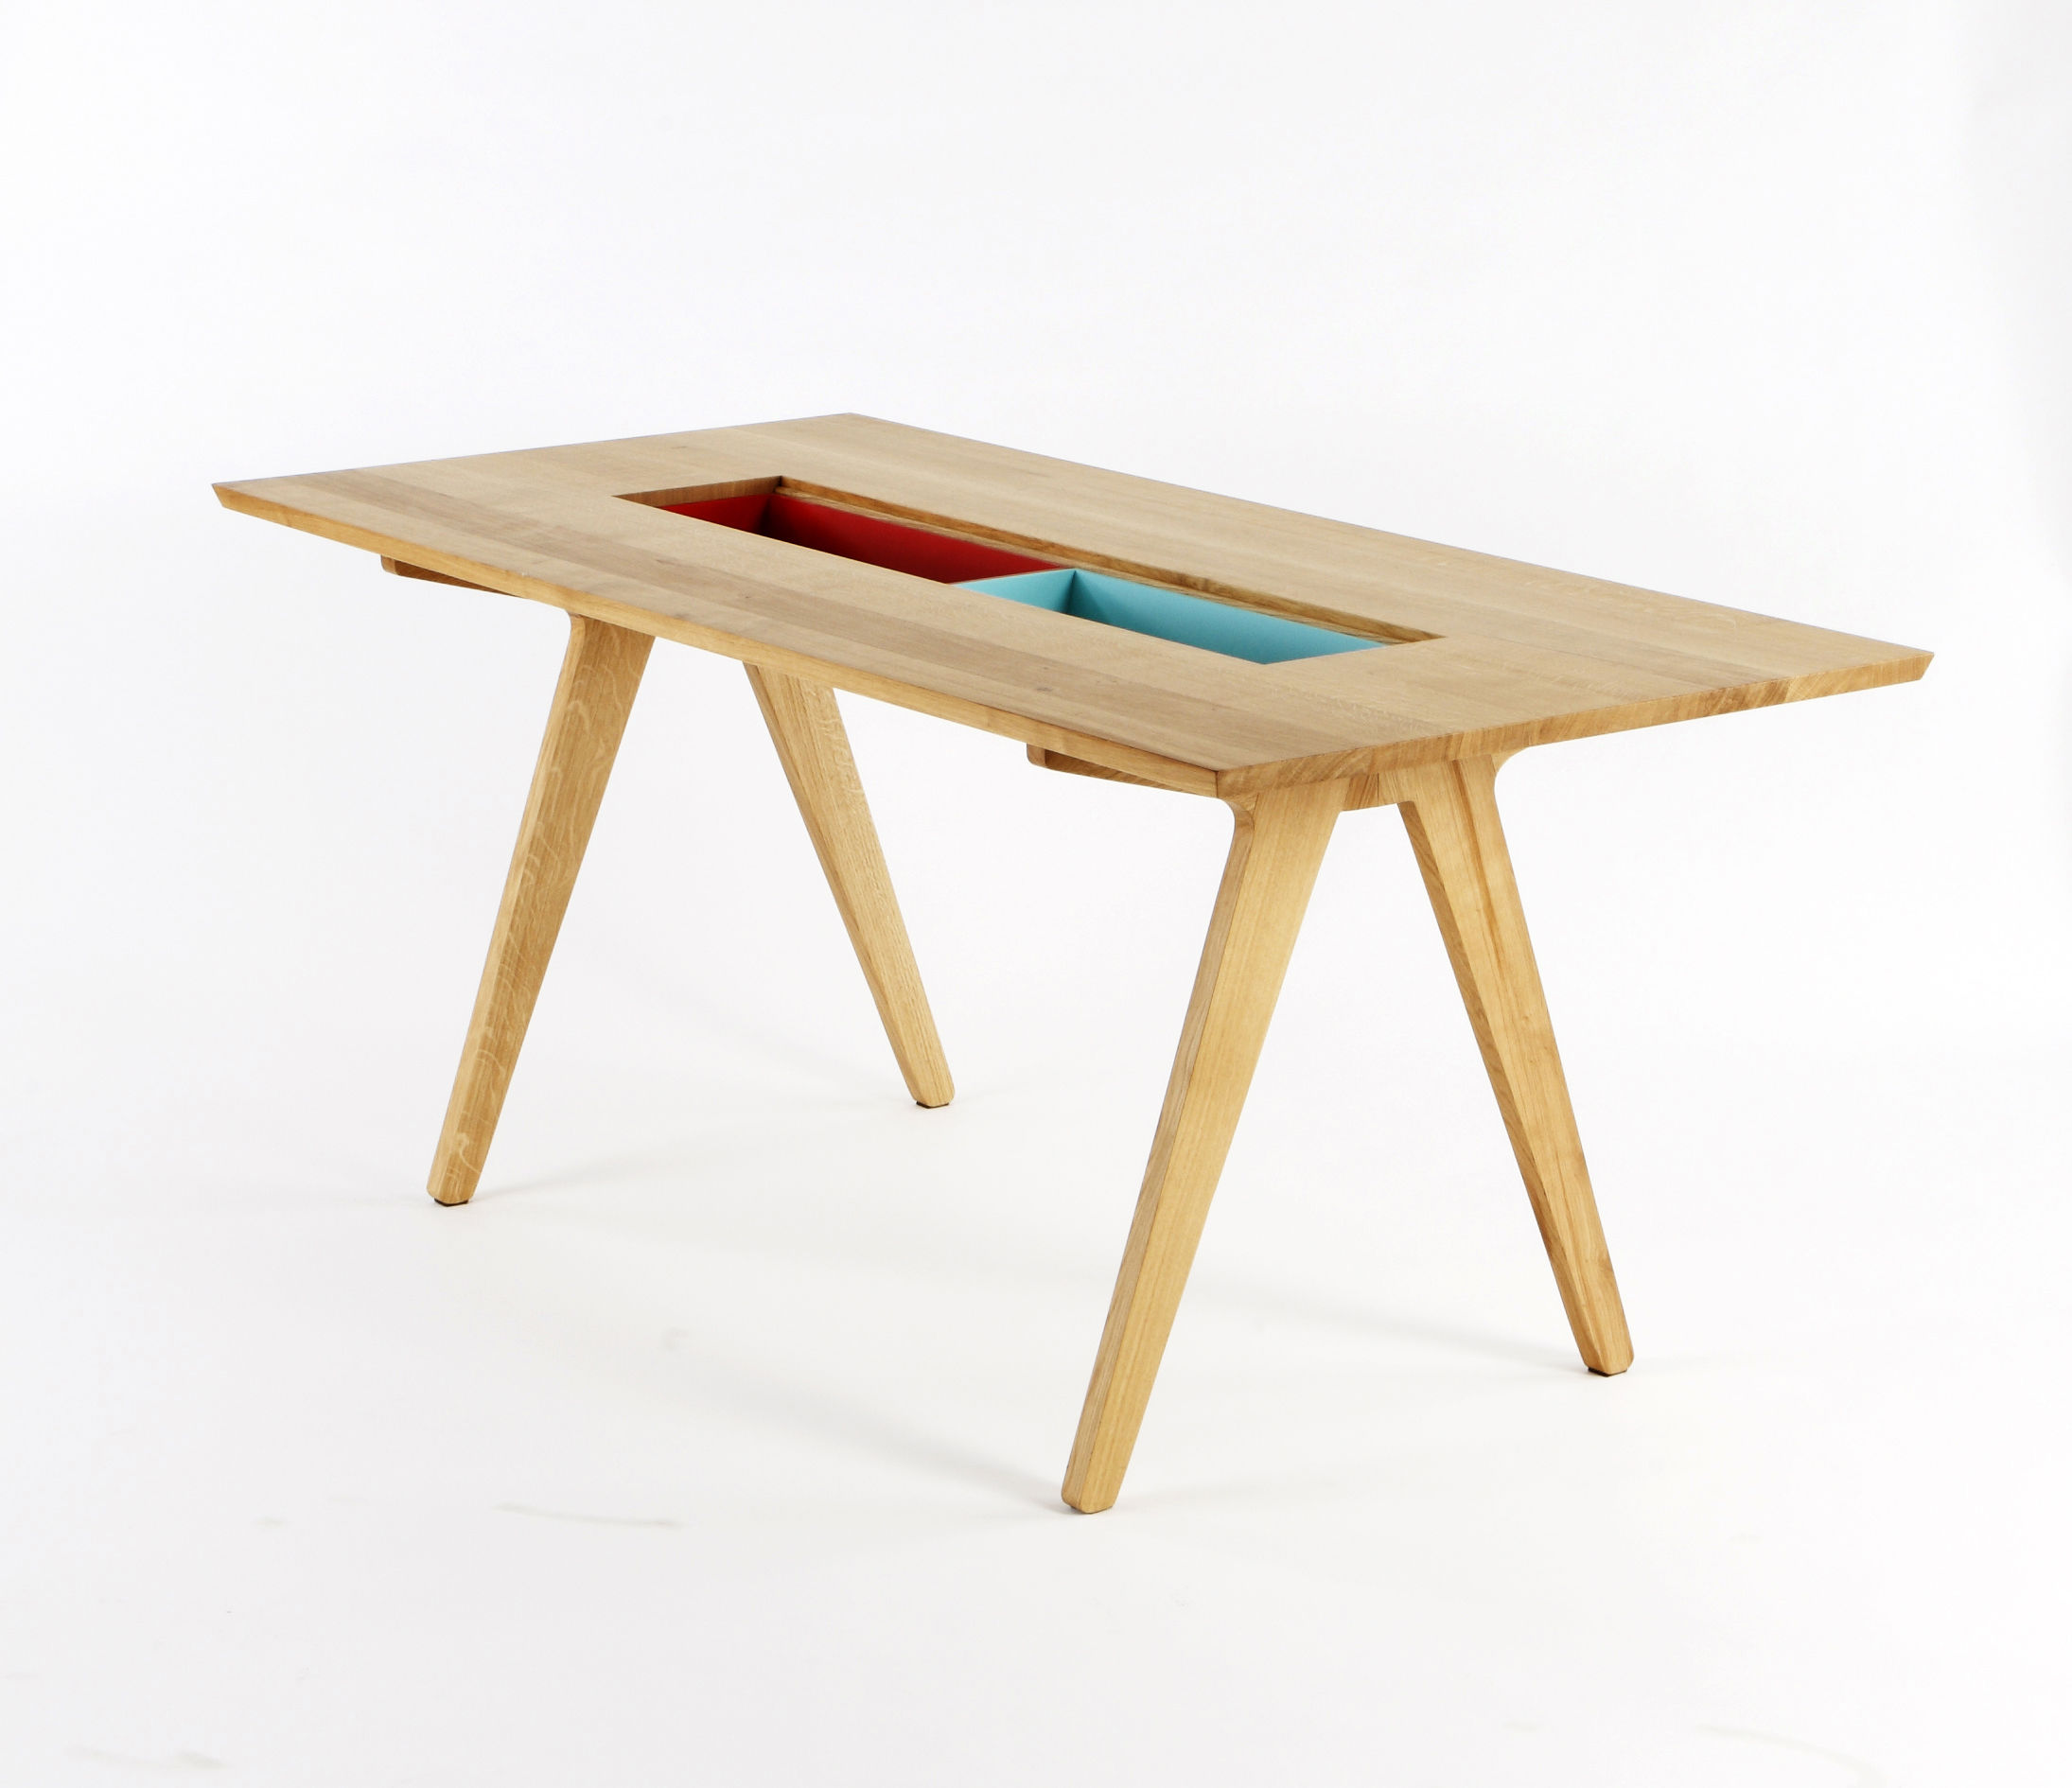 Table remix 8 personnes l 180 cm ch ne compartiments - Table 8 personne ...